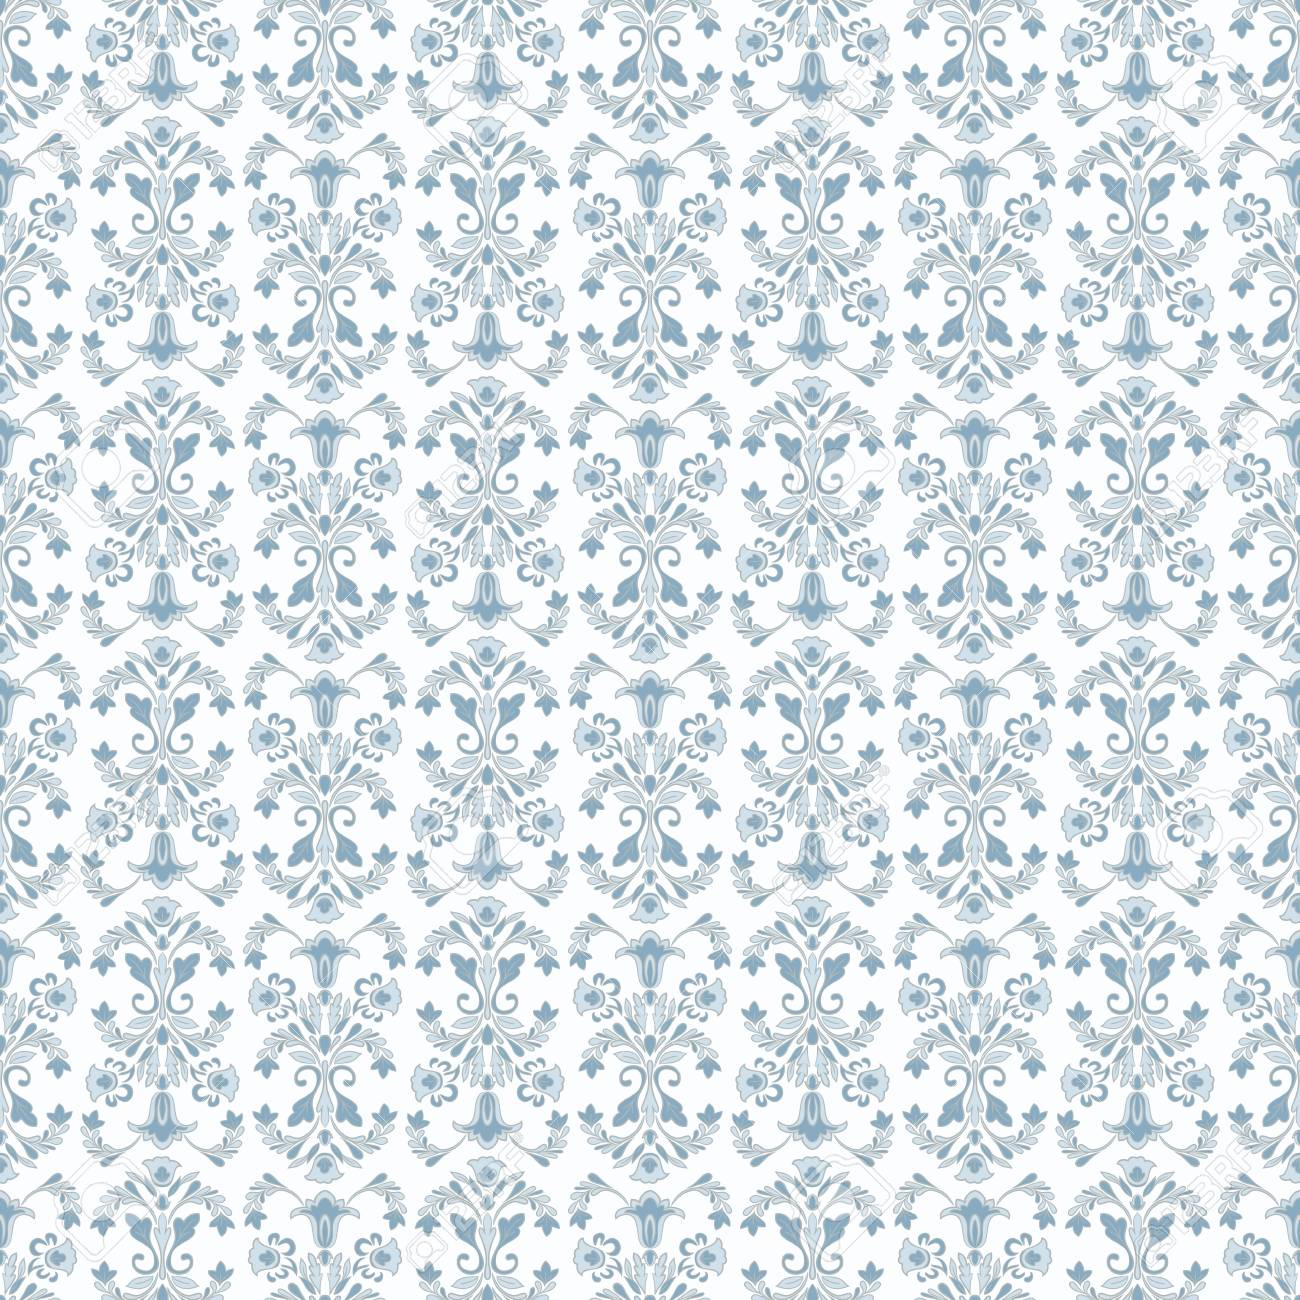 Seamless reto pattern can be used for wallpaper, website background, textile printing. Modern